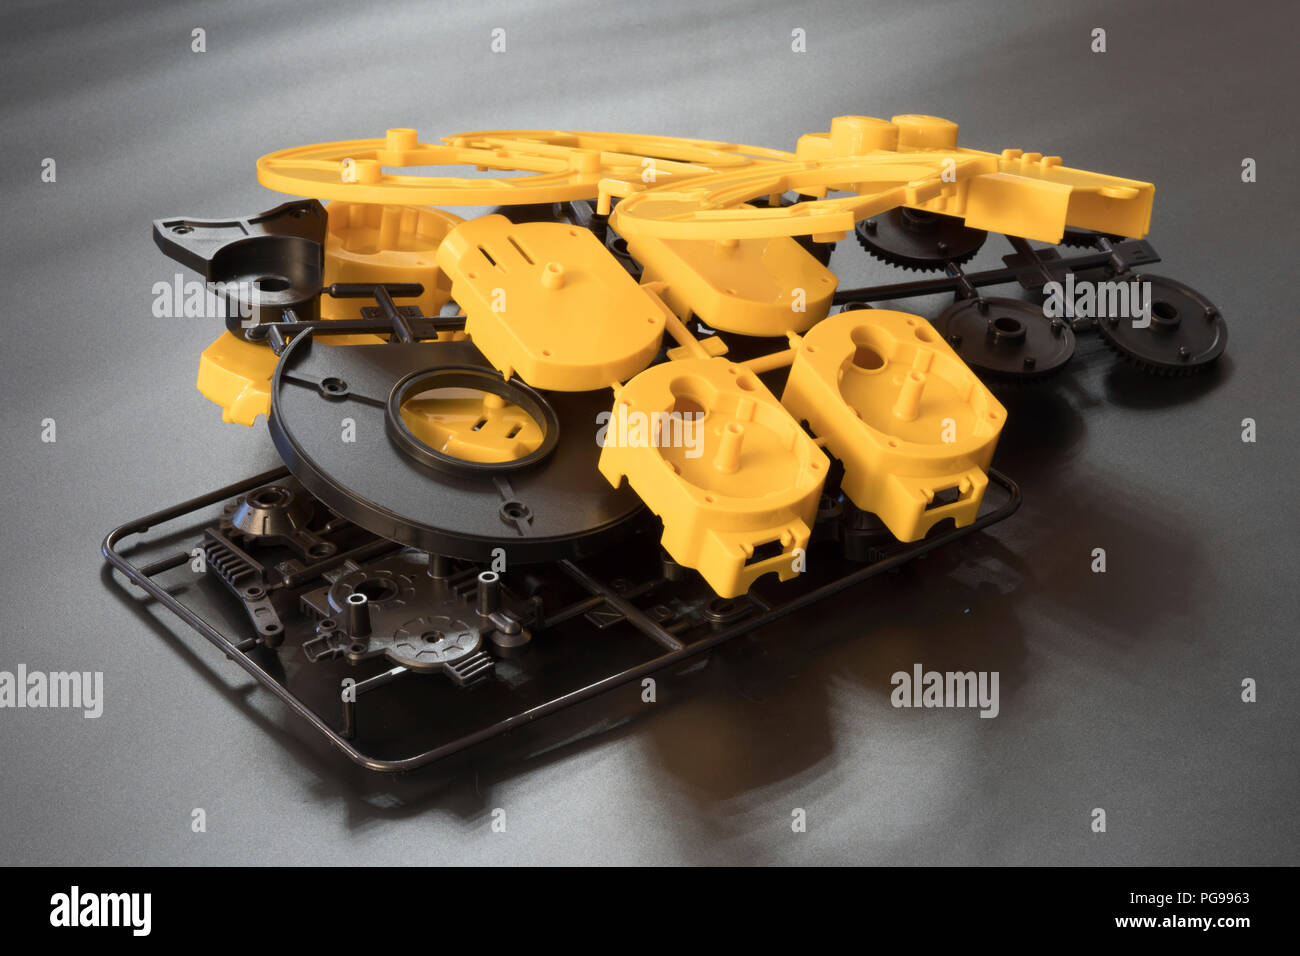 Injection moulding moulds. - Stock Image